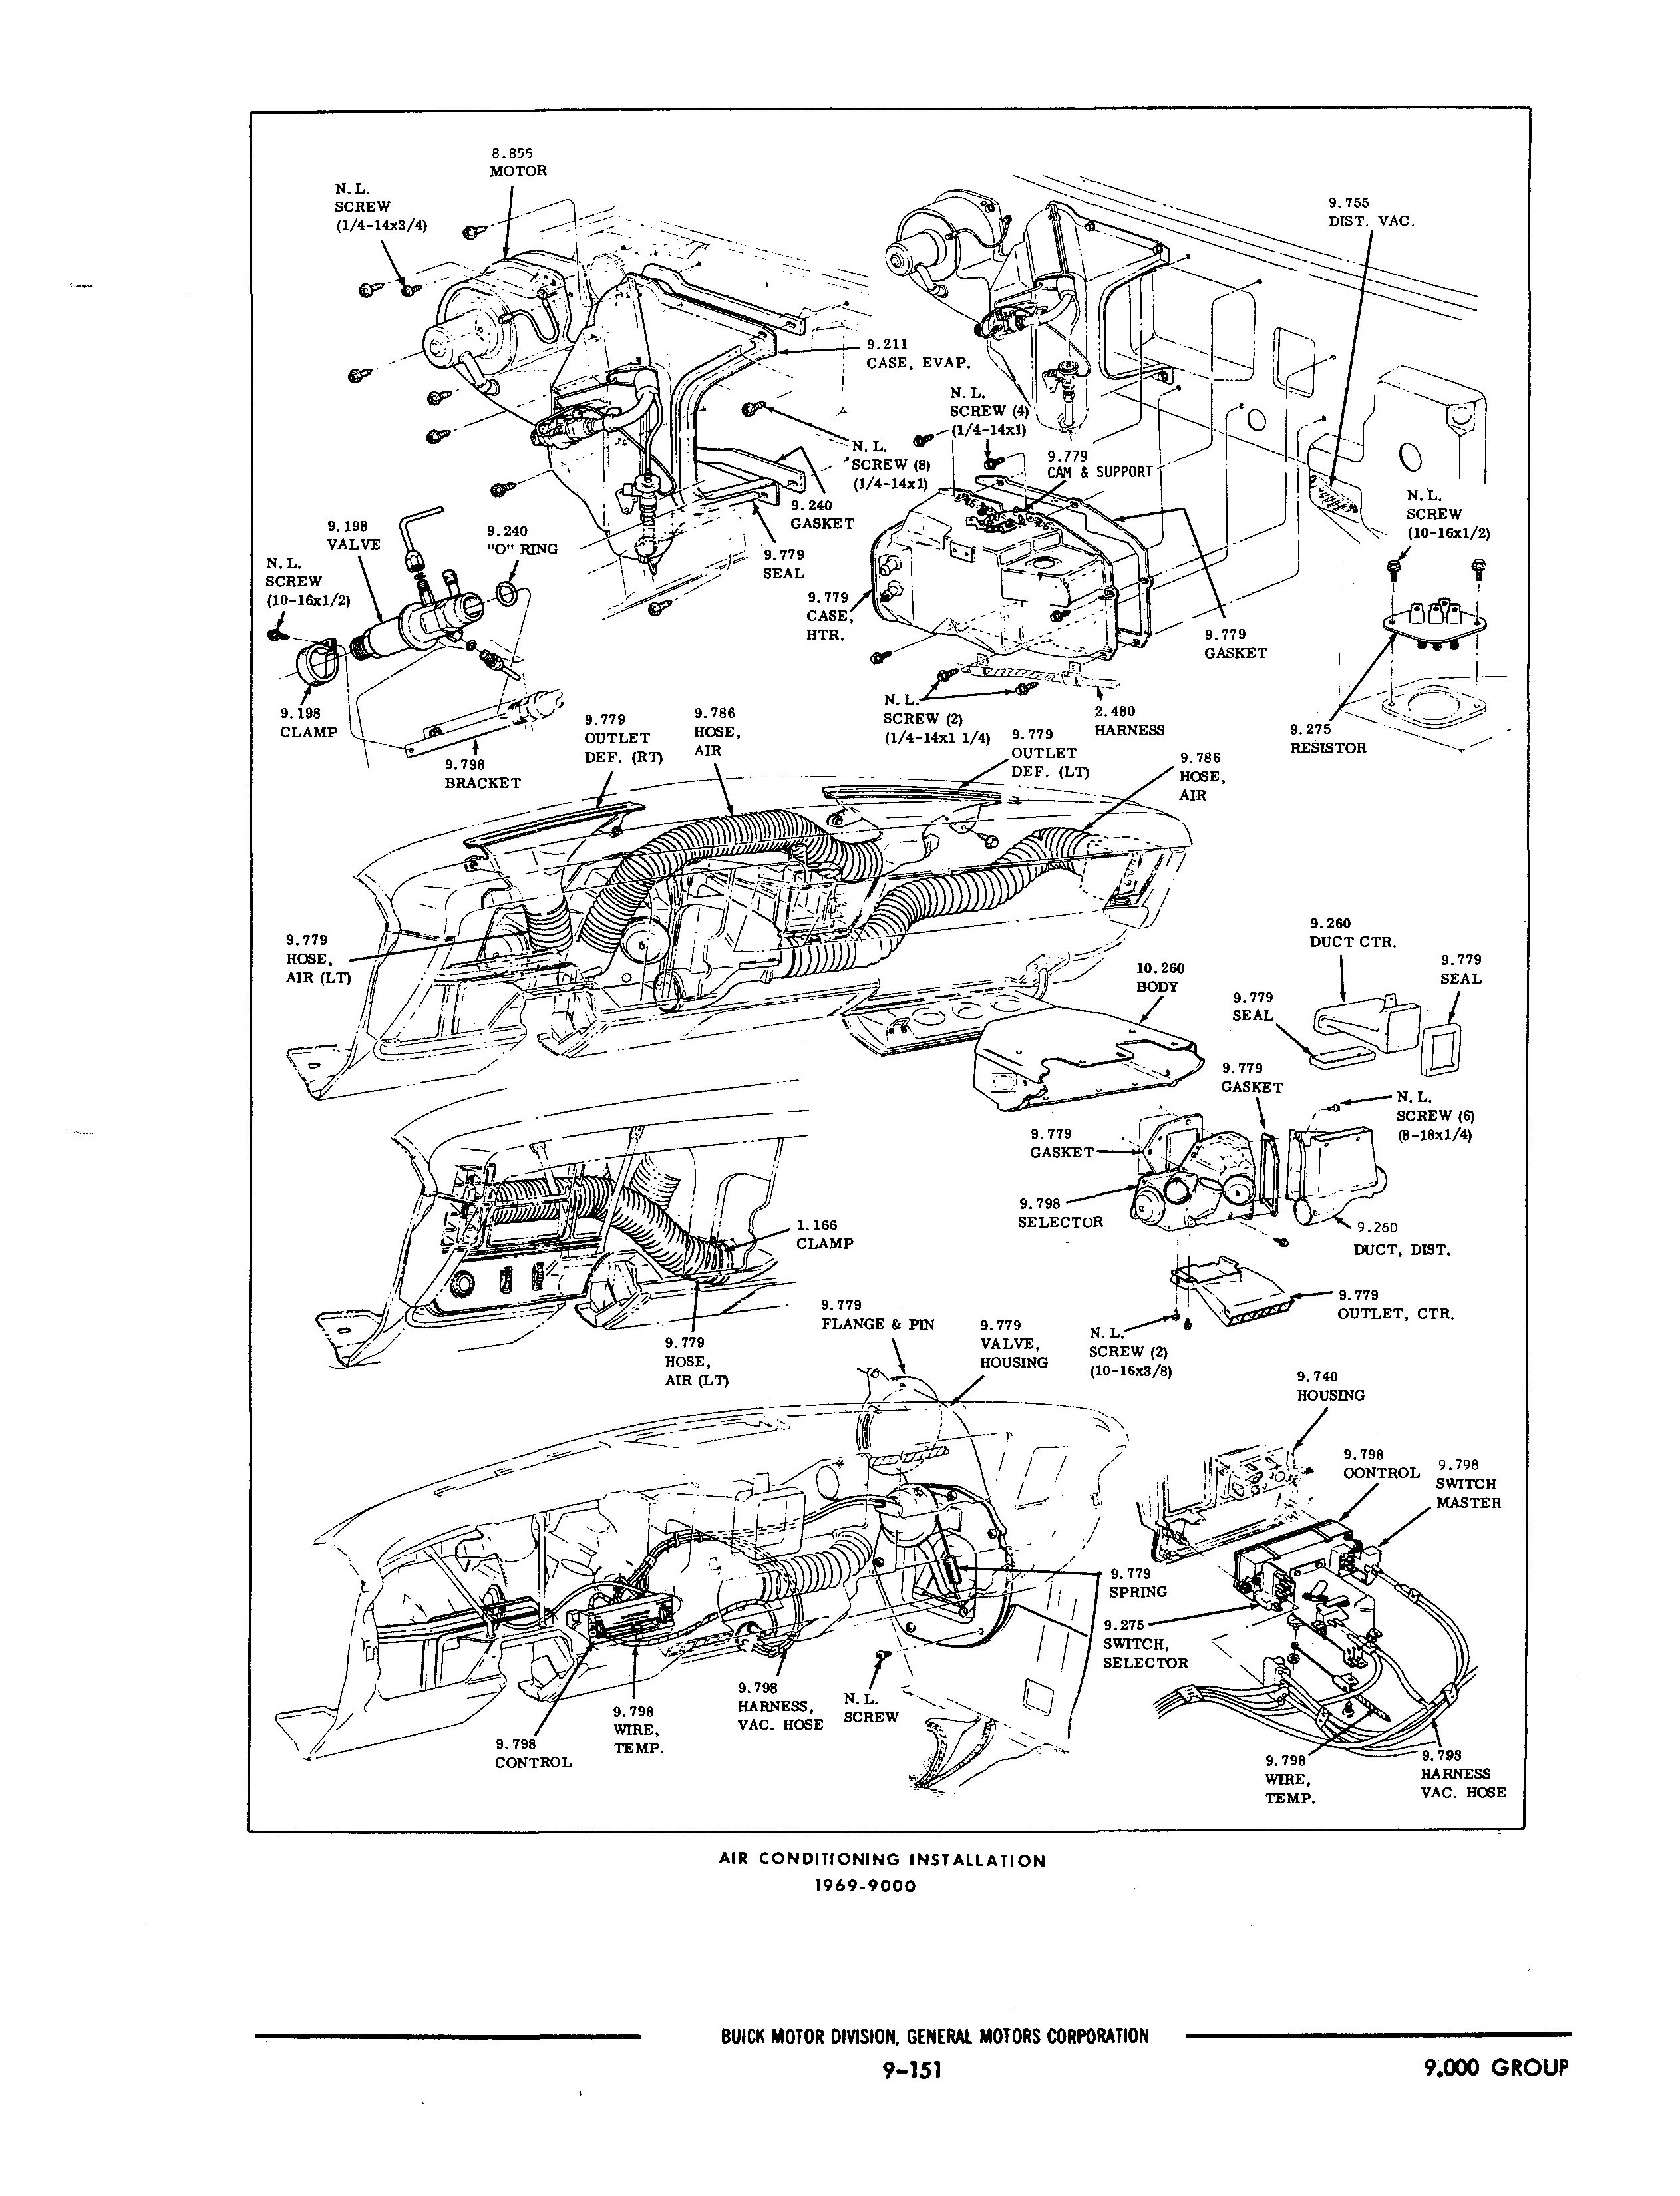 engine diagram pic2fly jeep liberty 3 7 jeep liberty 3 7